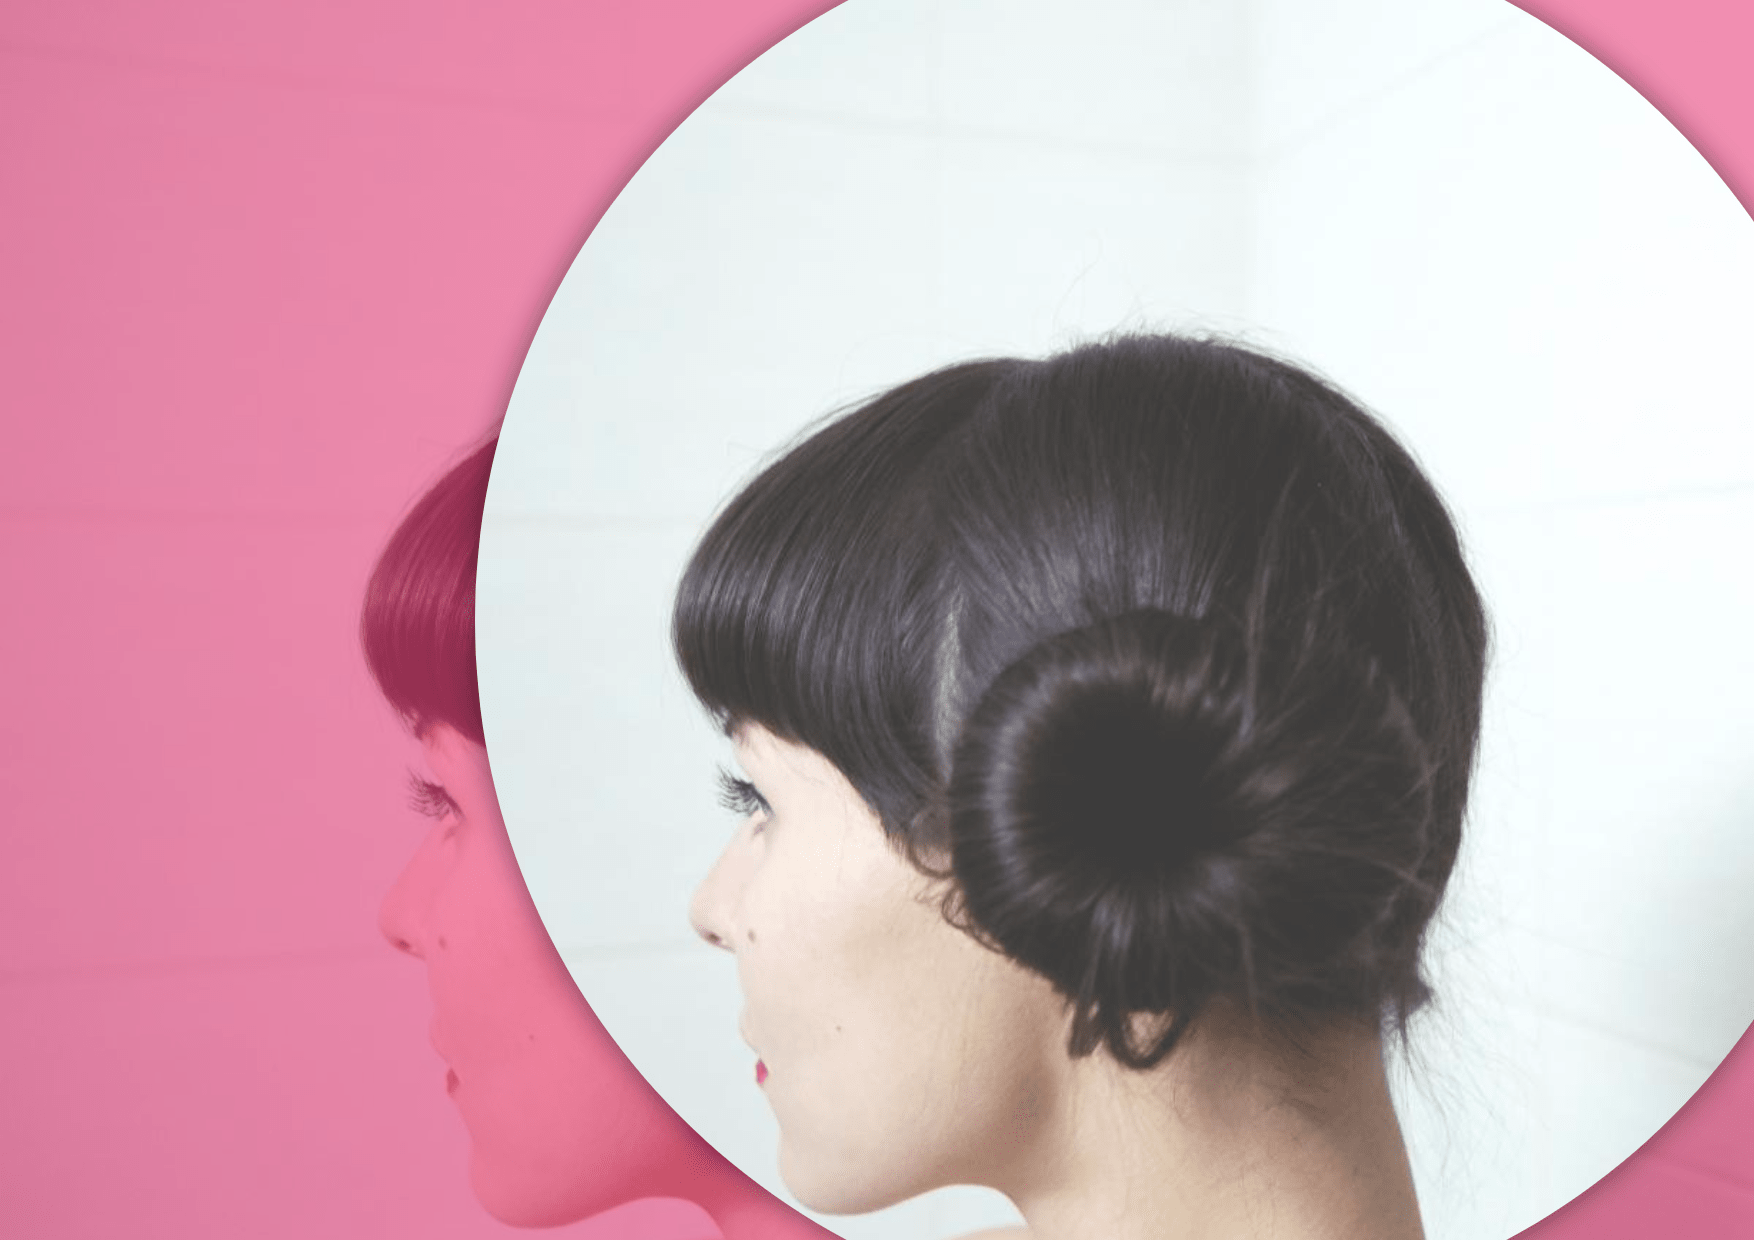 Hair,                Face,                Hairstyle,                Nose,                Pink,                Image,                Avatar,                White,                Black,                Fuchsia,                 Free Image